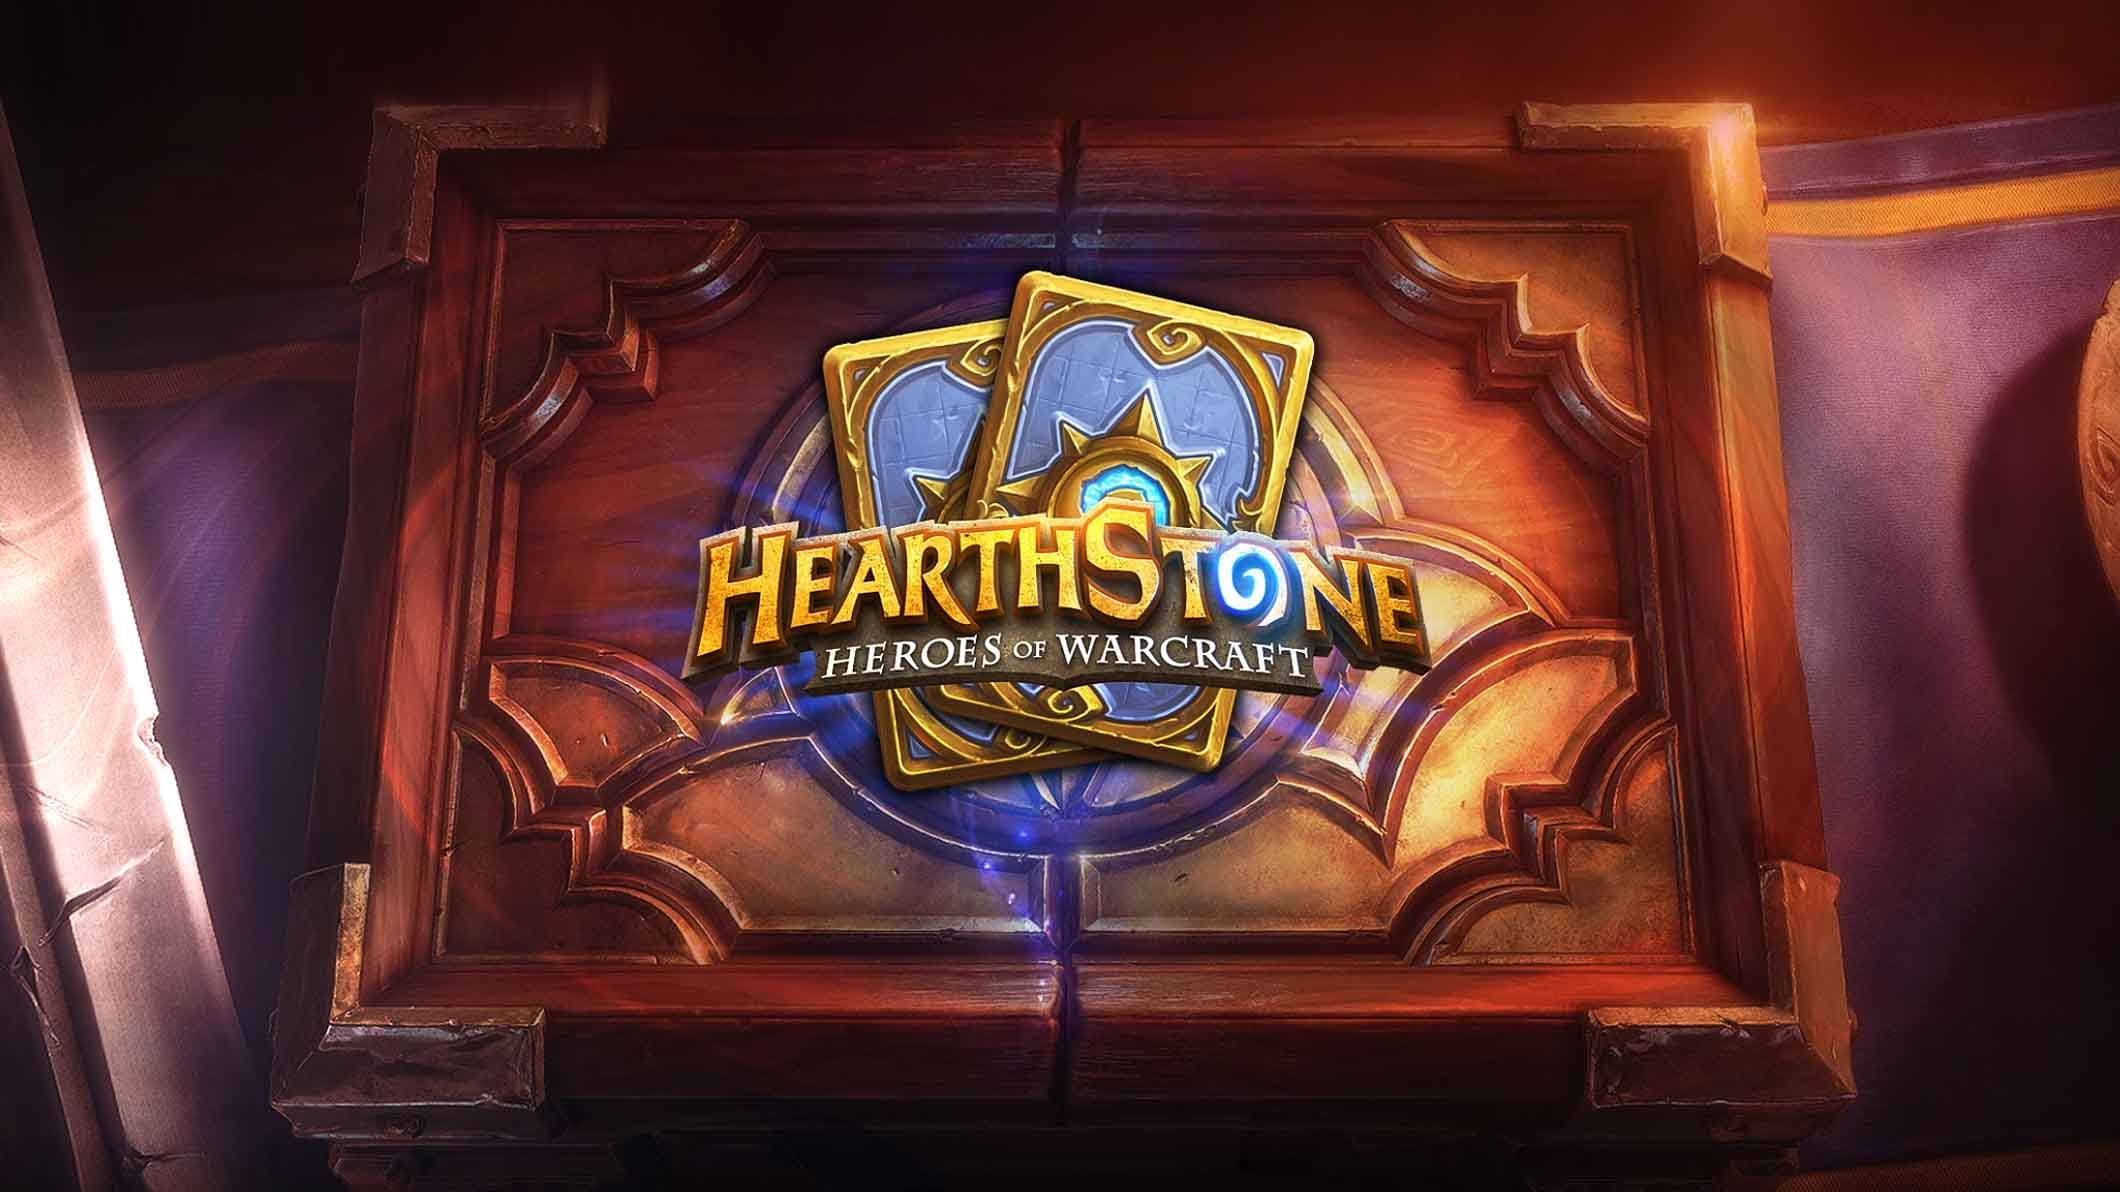 Hearthstone: Heroes Of Warcraft HQ wallpapers